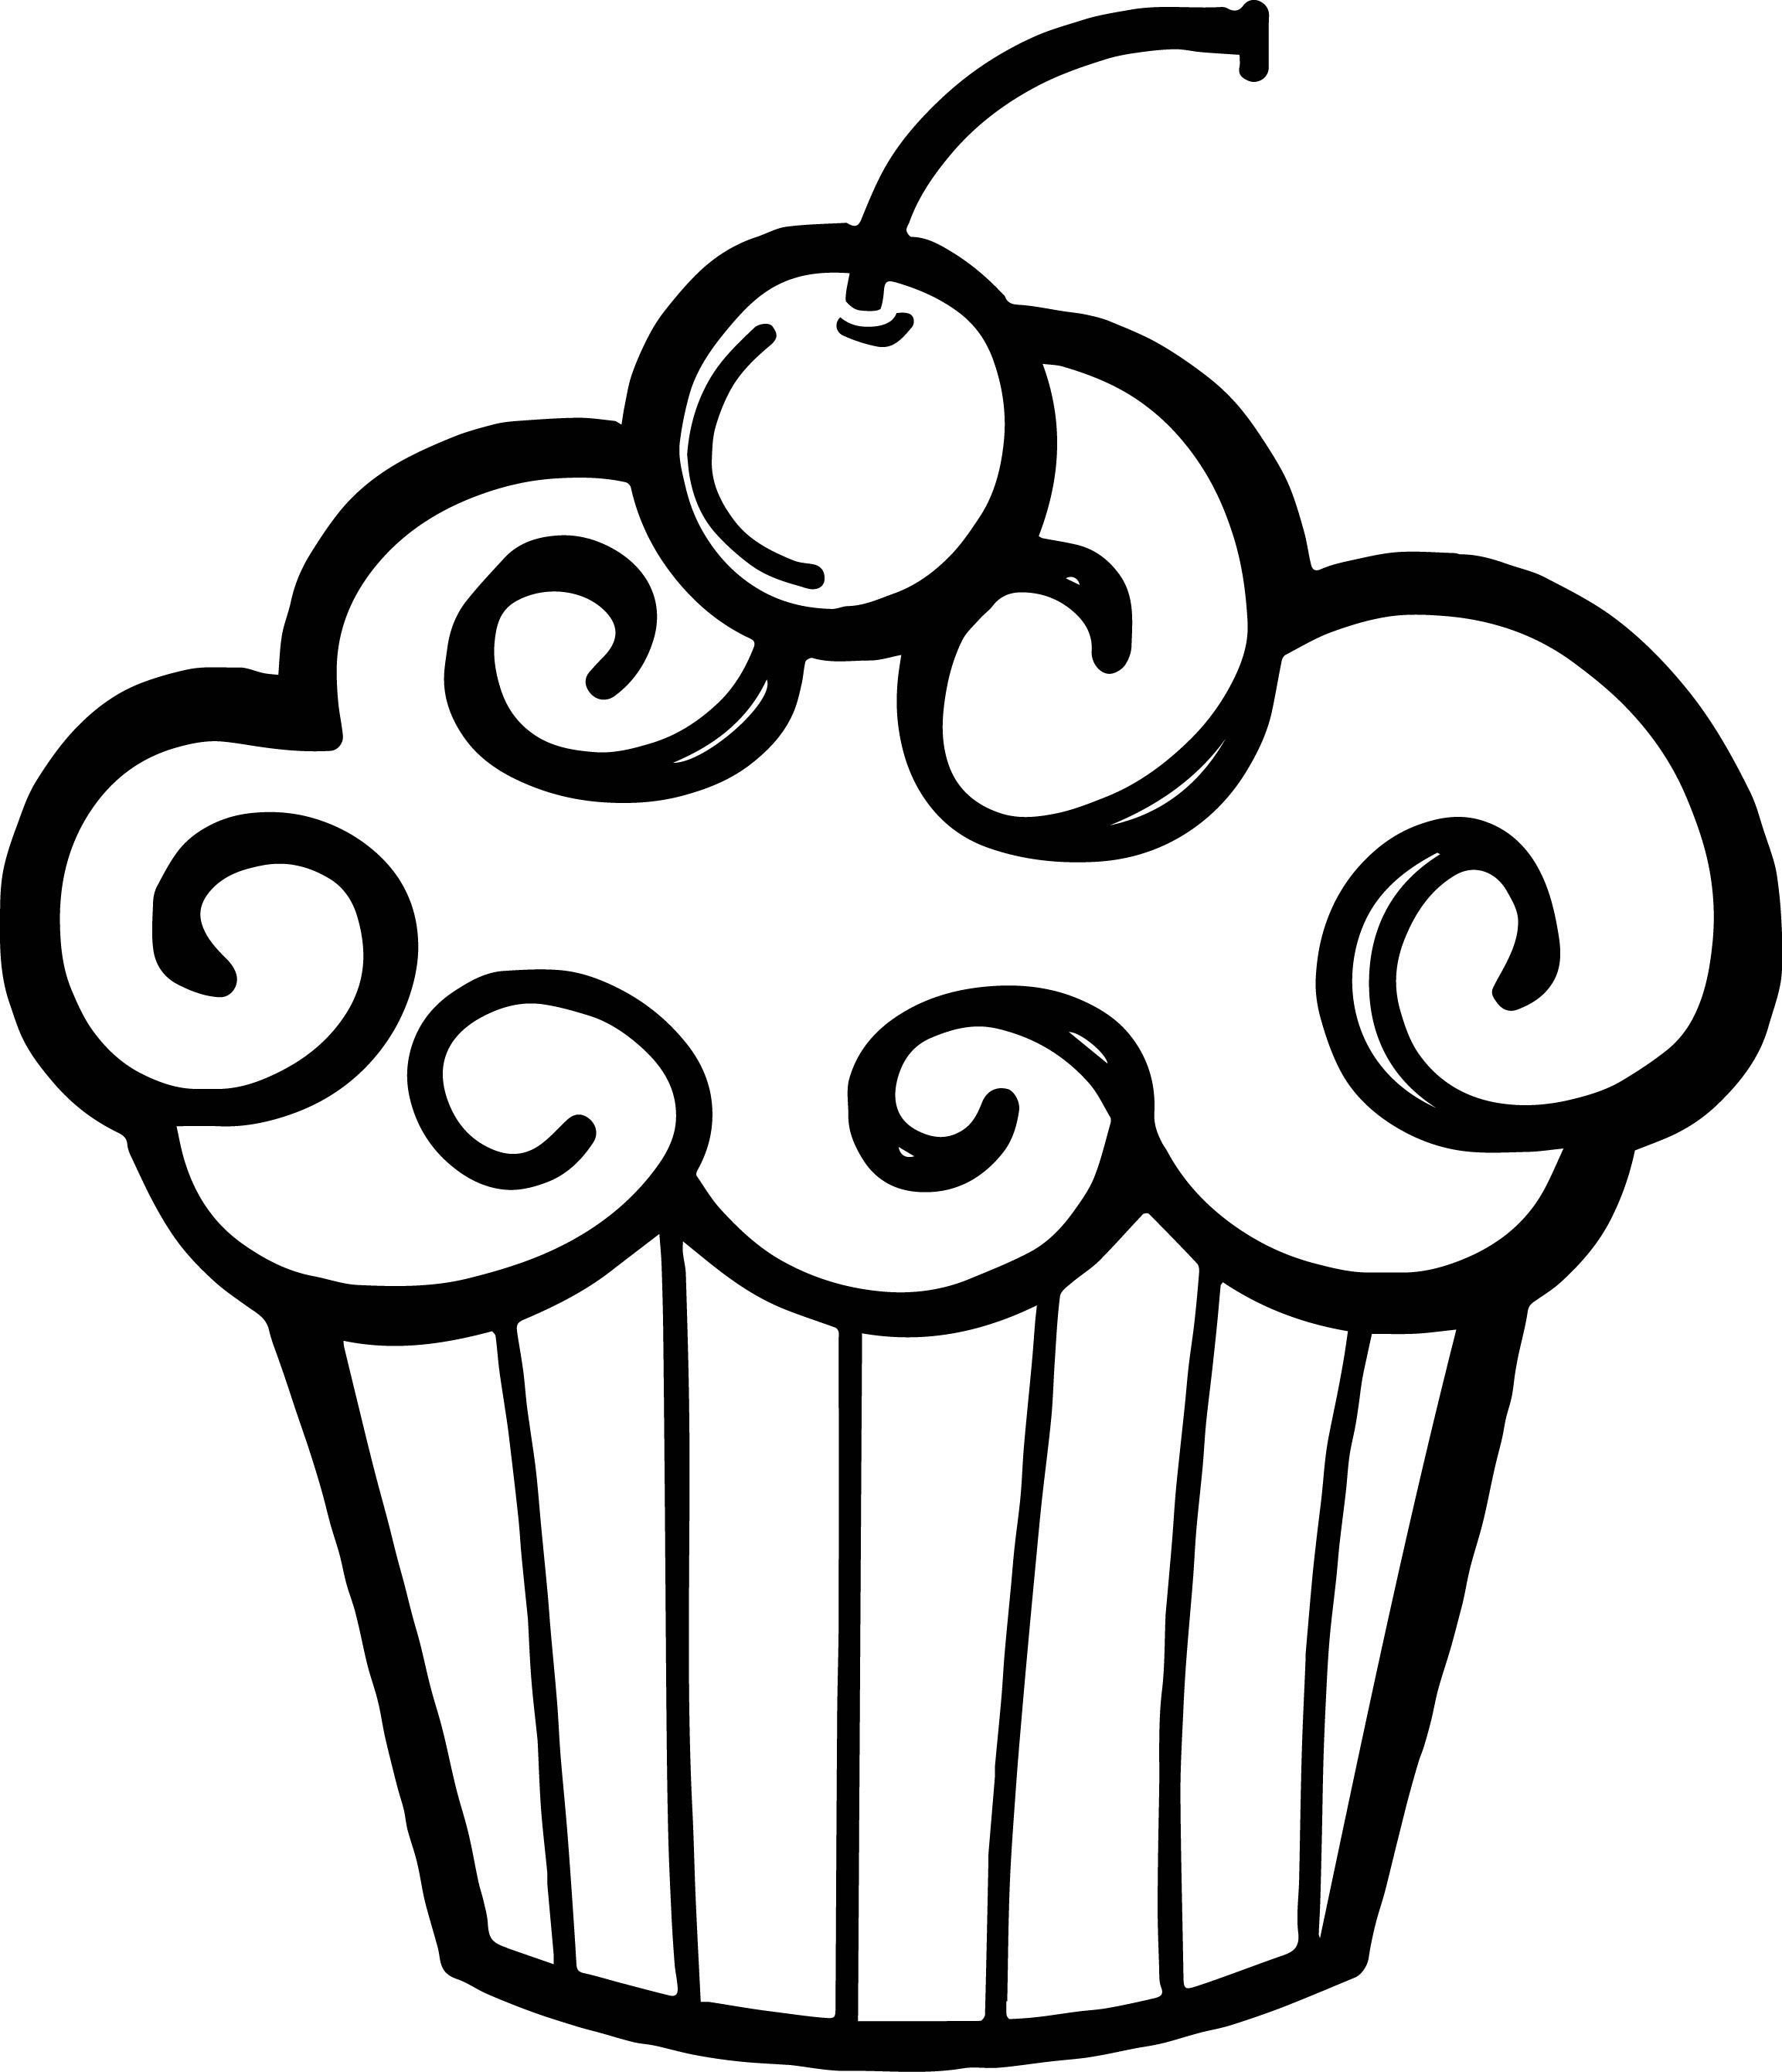 Cupcake clipart outline